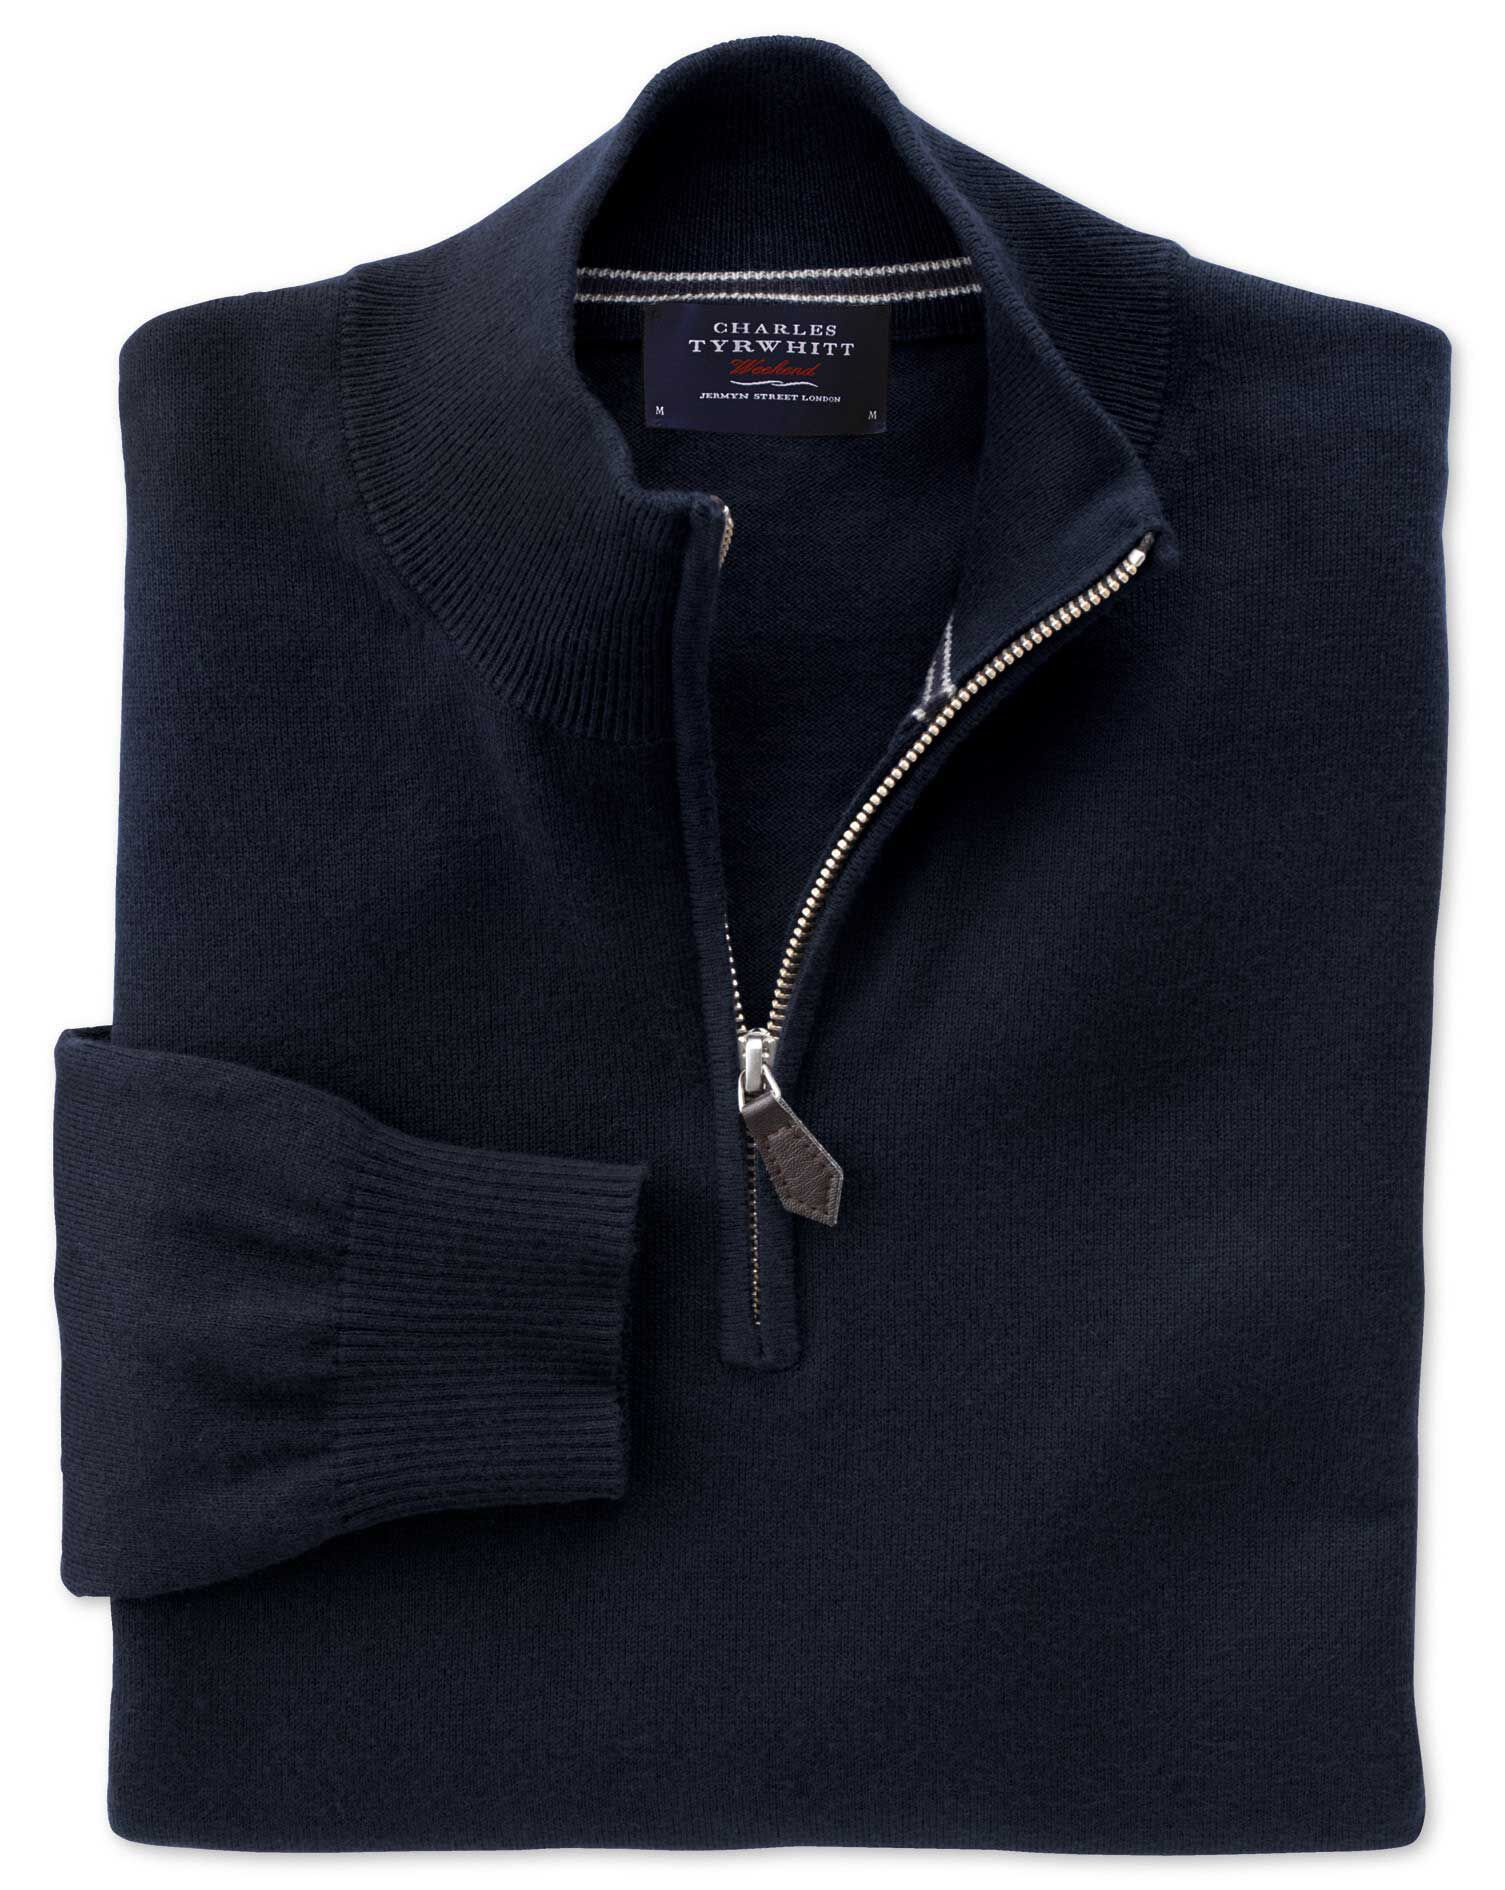 Navy Cotton Cashmere Zip Neck Jumper Size Small by Charles Tyrwhitt